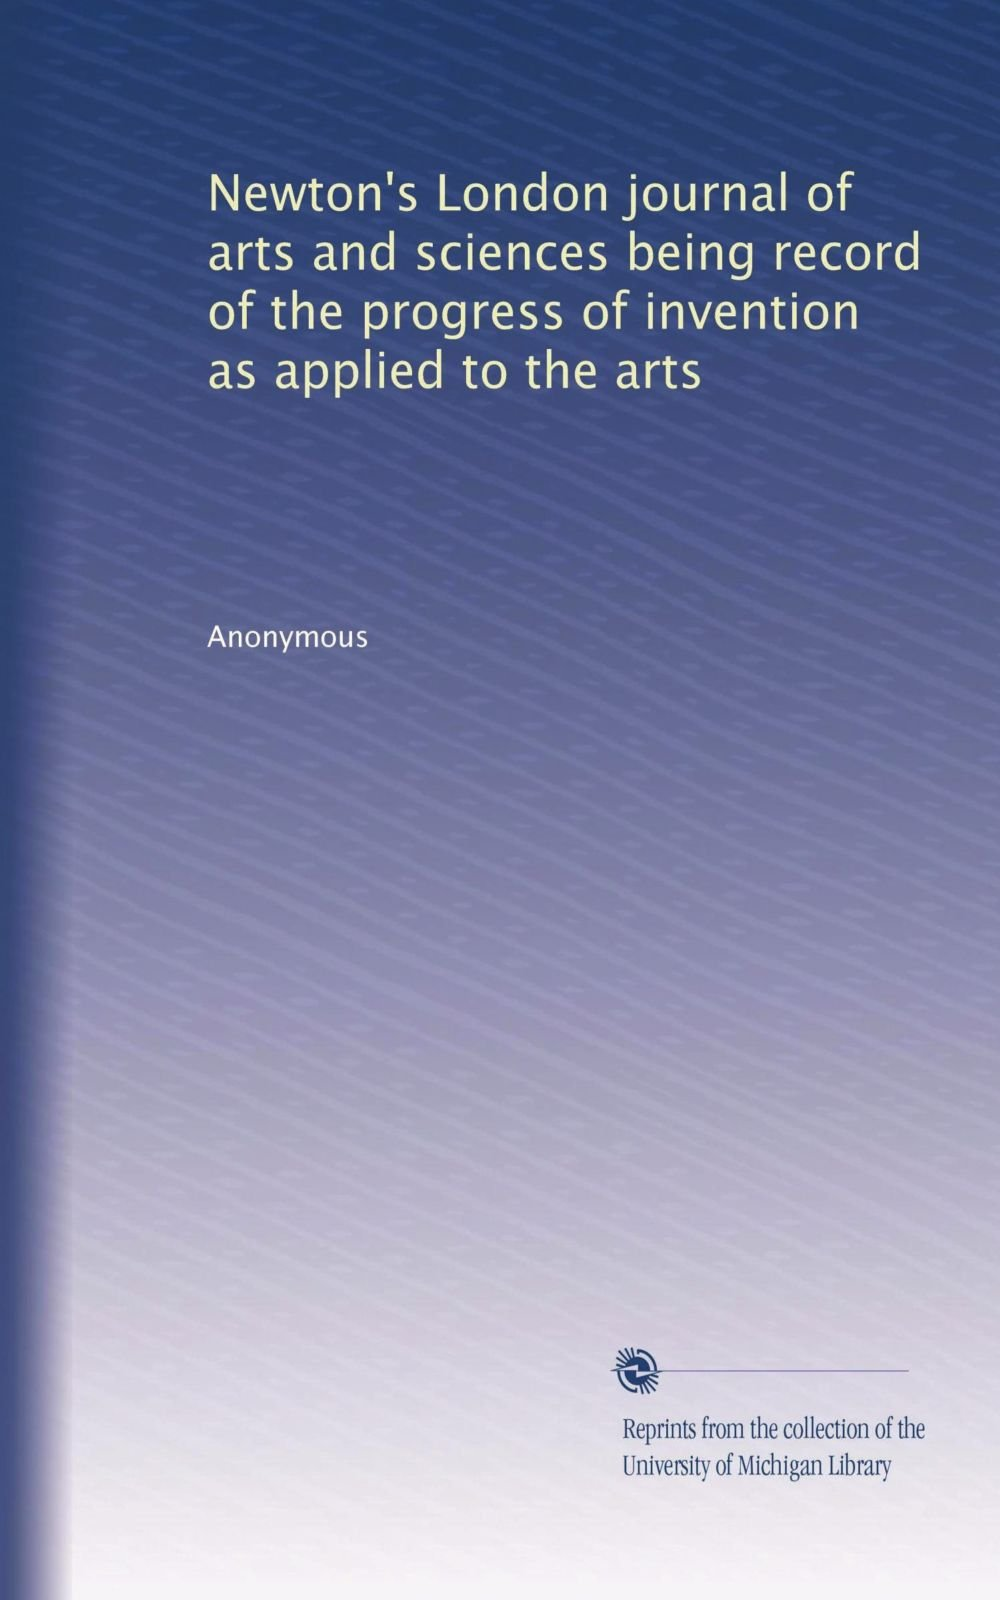 Newton's London journal of arts and sciences being record of the progress of invention as applied to the arts (Volume 51) PDF